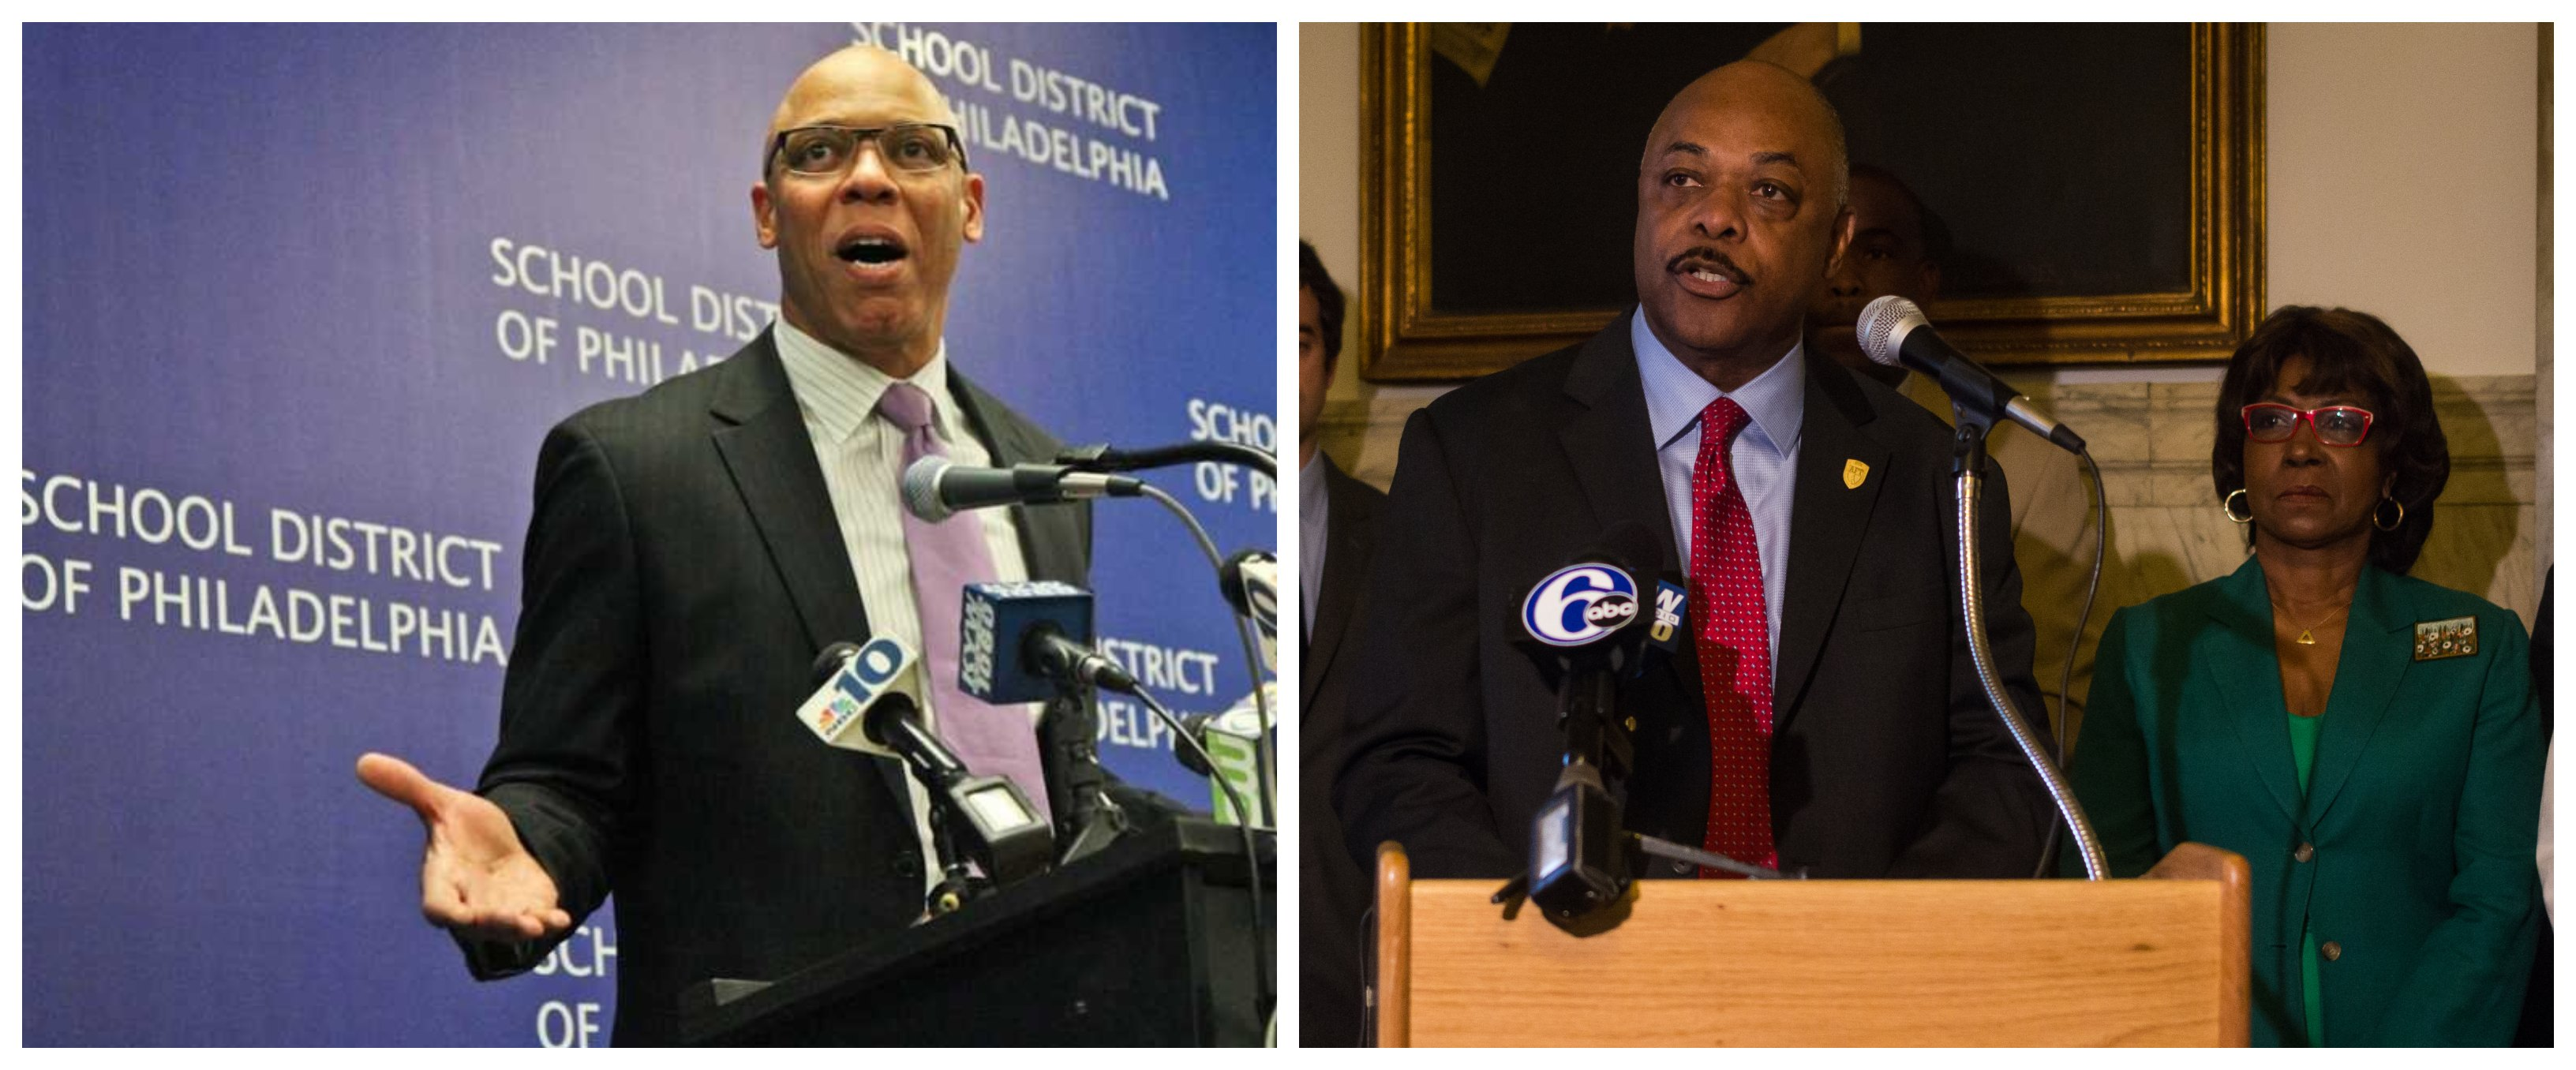 Split image of William Hite speaking at a microphone on the left and Jerry Jordan speaking at a microphone on the right.